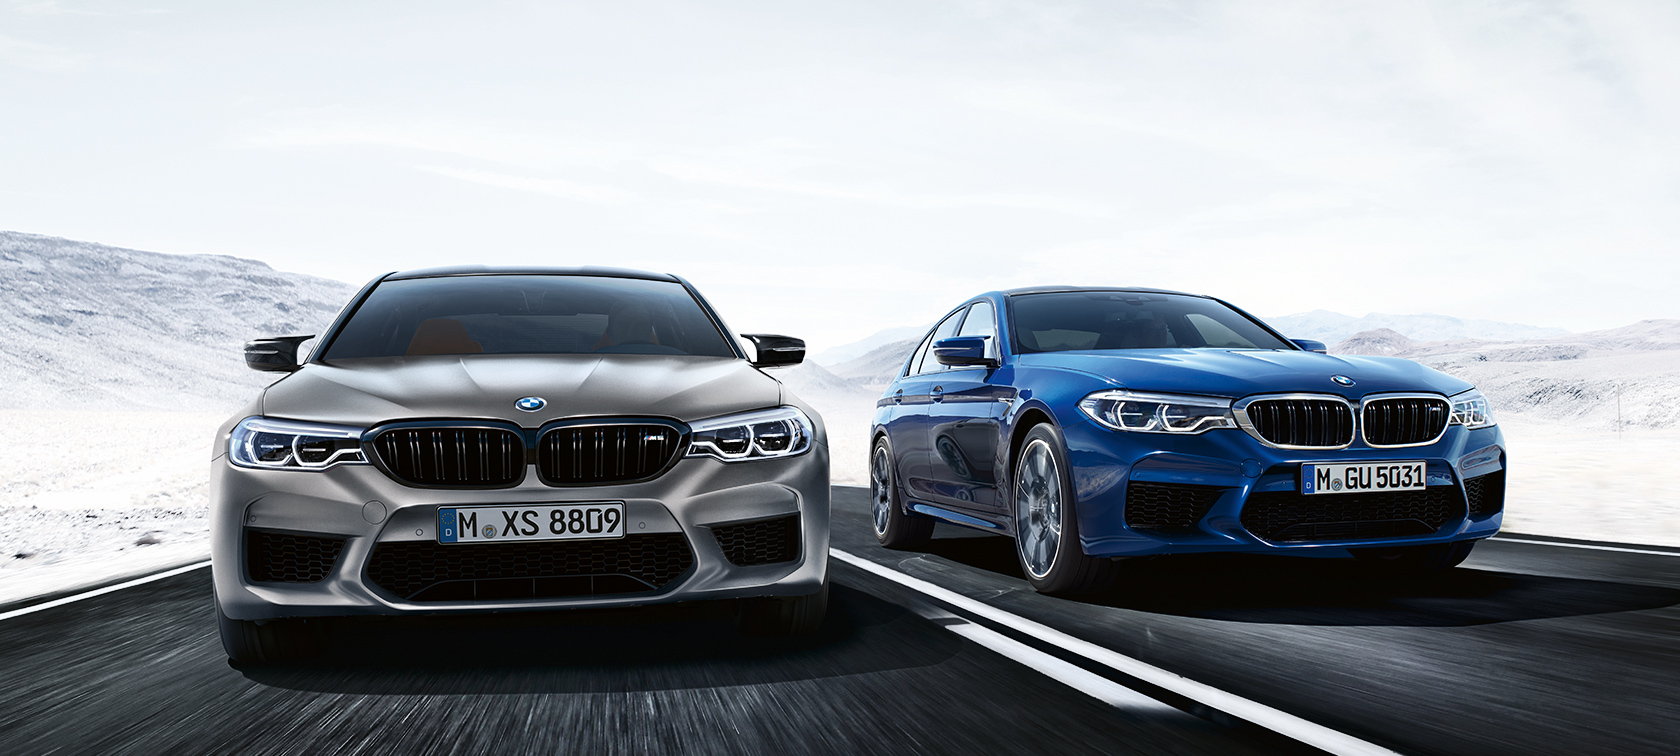 The BMW M5 With M xDrive.